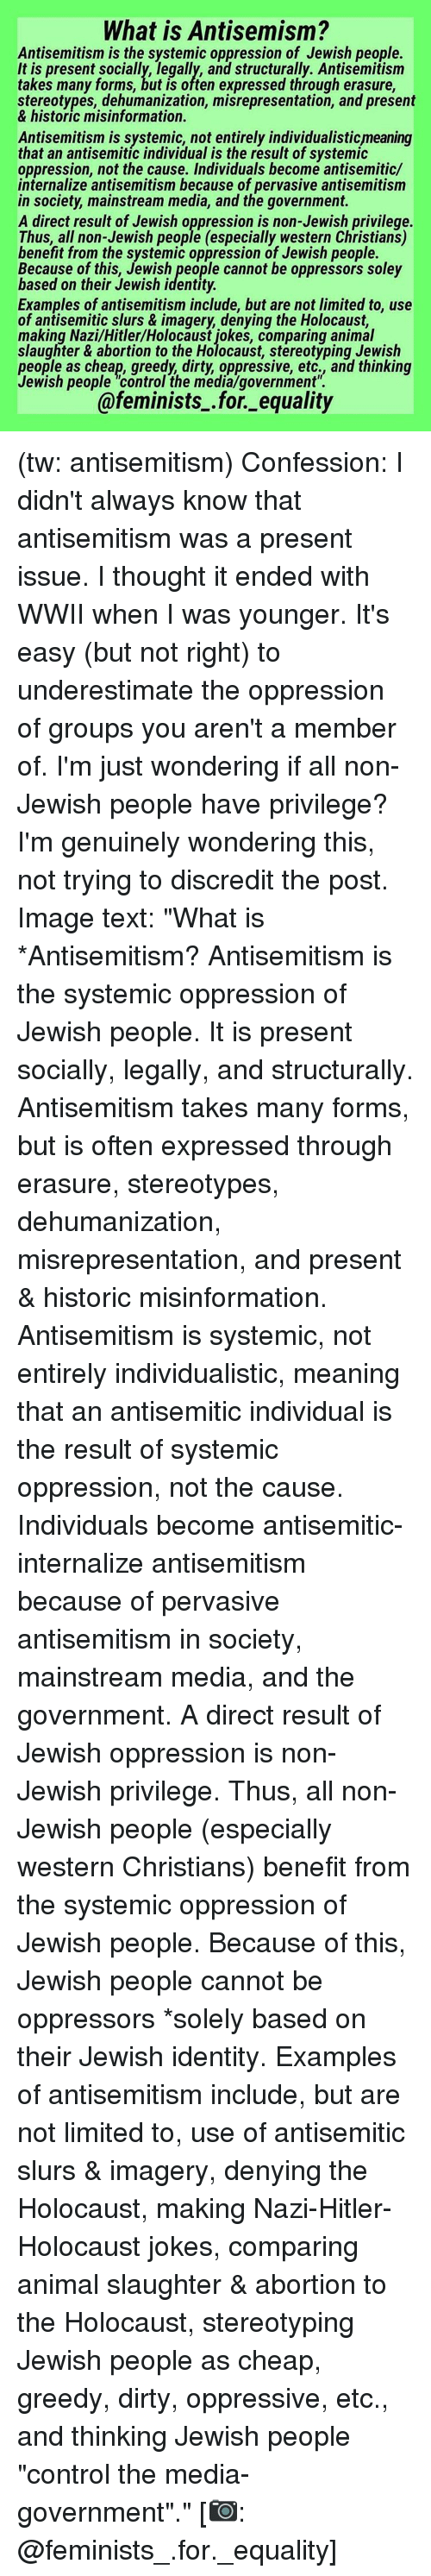 "Memes, Antisemitism, and 🤖: What is Antisemism?  Antisemitism is the systemic oppression of Jewish people.  It is present socially, legally, and structurally. Antisemitism  takes many forms, but is often expressed through erasure,  stereotypes, dehumanization, misrepresentation, and present  misinformation  Antisemitism is systemic, not entirely individualisticmeaning  that an antisemitic individual is the result of systemic  oppression, not the cause. Individuals become antisemitic/  internalize antisemitism because of pervasive antisemitism  in society mainstream media, and the government  A direct result of Jewish oppression is non-Jewish privilege  Thus, all non-Jewish people (especially western Christians)  benefit from the systemic oppression of Jewish people  Because of this, Jewish people cannot be oppressors soley  based on their Jewish identity.  Examples of antisemitism include, but are not limited to, use  of antisemitic slurs & imagery denying the Holocaust.  making Nazi/Hitler/Holocaust jokes, comparing animal  slaughter & abortion to the Holocaust, stereotyping Jewish  people as cheap, greedy dirty, oppressive, etc., and thinking  Jewish people control the media/government  @feminists for equality (tw: antisemitism) Confession: I didn't always know that antisemitism was a present issue. I thought it ended with WWII when I was younger. It's easy (but not right) to underestimate the oppression of groups you aren't a member of. I'm just wondering if all non-Jewish people have privilege? I'm genuinely wondering this, not trying to discredit the post. Image text: ""What is *Antisemitism? Antisemitism is the systemic oppression of Jewish people. It is present socially, legally, and structurally. Antisemitism takes many forms, but is often expressed through erasure, stereotypes, dehumanization, misrepresentation, and present & historic misinformation. Antisemitism is systemic, not entirely individualistic, meaning that an antisemitic individual is the result of systemic oppression, not the cause. Individuals become antisemitic-internalize antisemitism because of pervasive antisemitism in society, mainstream media, and the government. A direct result of Jewish oppression is non-Jewish privilege. Thus, all non-Jewish people (especially western Christians) benefit from the systemic oppression of Jewish people. Because of this, Jewish people cannot be oppressors *solely based on their Jewish identity. Examples of antisemitism include, but are not limited to, use of antisemitic slurs & imagery, denying the Holocaust, making Nazi-Hitler-Holocaust jokes, comparing animal slaughter & abortion to the Holocaust, stereotyping Jewish people as cheap, greedy, dirty, oppressive, etc., and thinking Jewish people ""control the media-government""."" [📷: @feminists_.for._equality]"